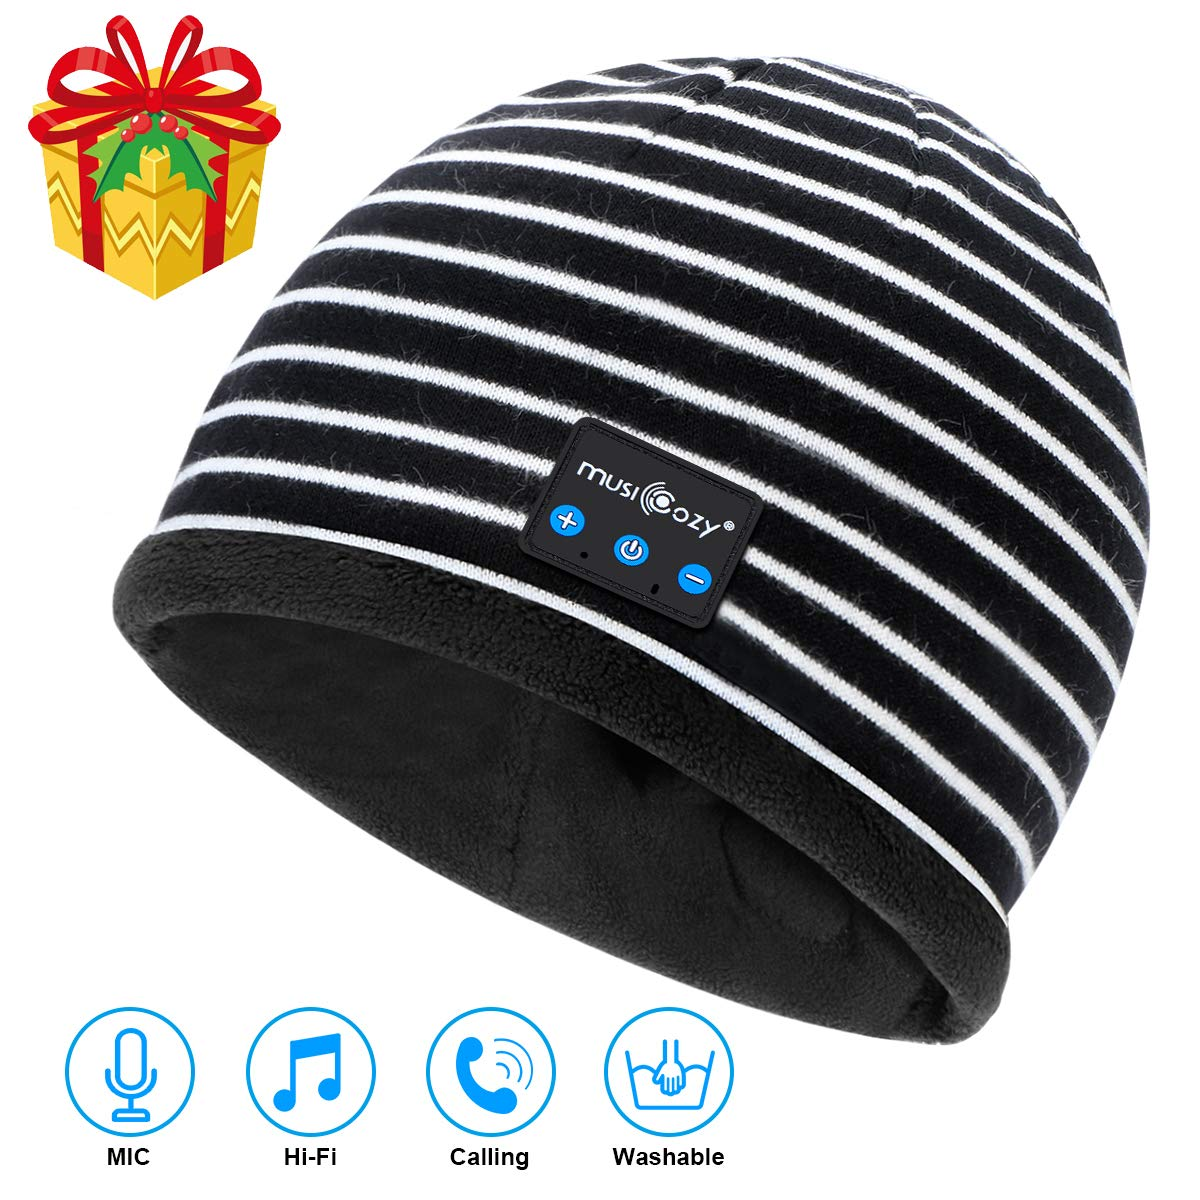 Bluetooth Beanie V5.2 Wireless Beanie Hat with Bluetooth Headphones,Built-in HD Stereo Speakers & Mic,Cool Tech Gadgets Christmas Unique Gifts for Men Women Dad Mom Teen Boys Girls